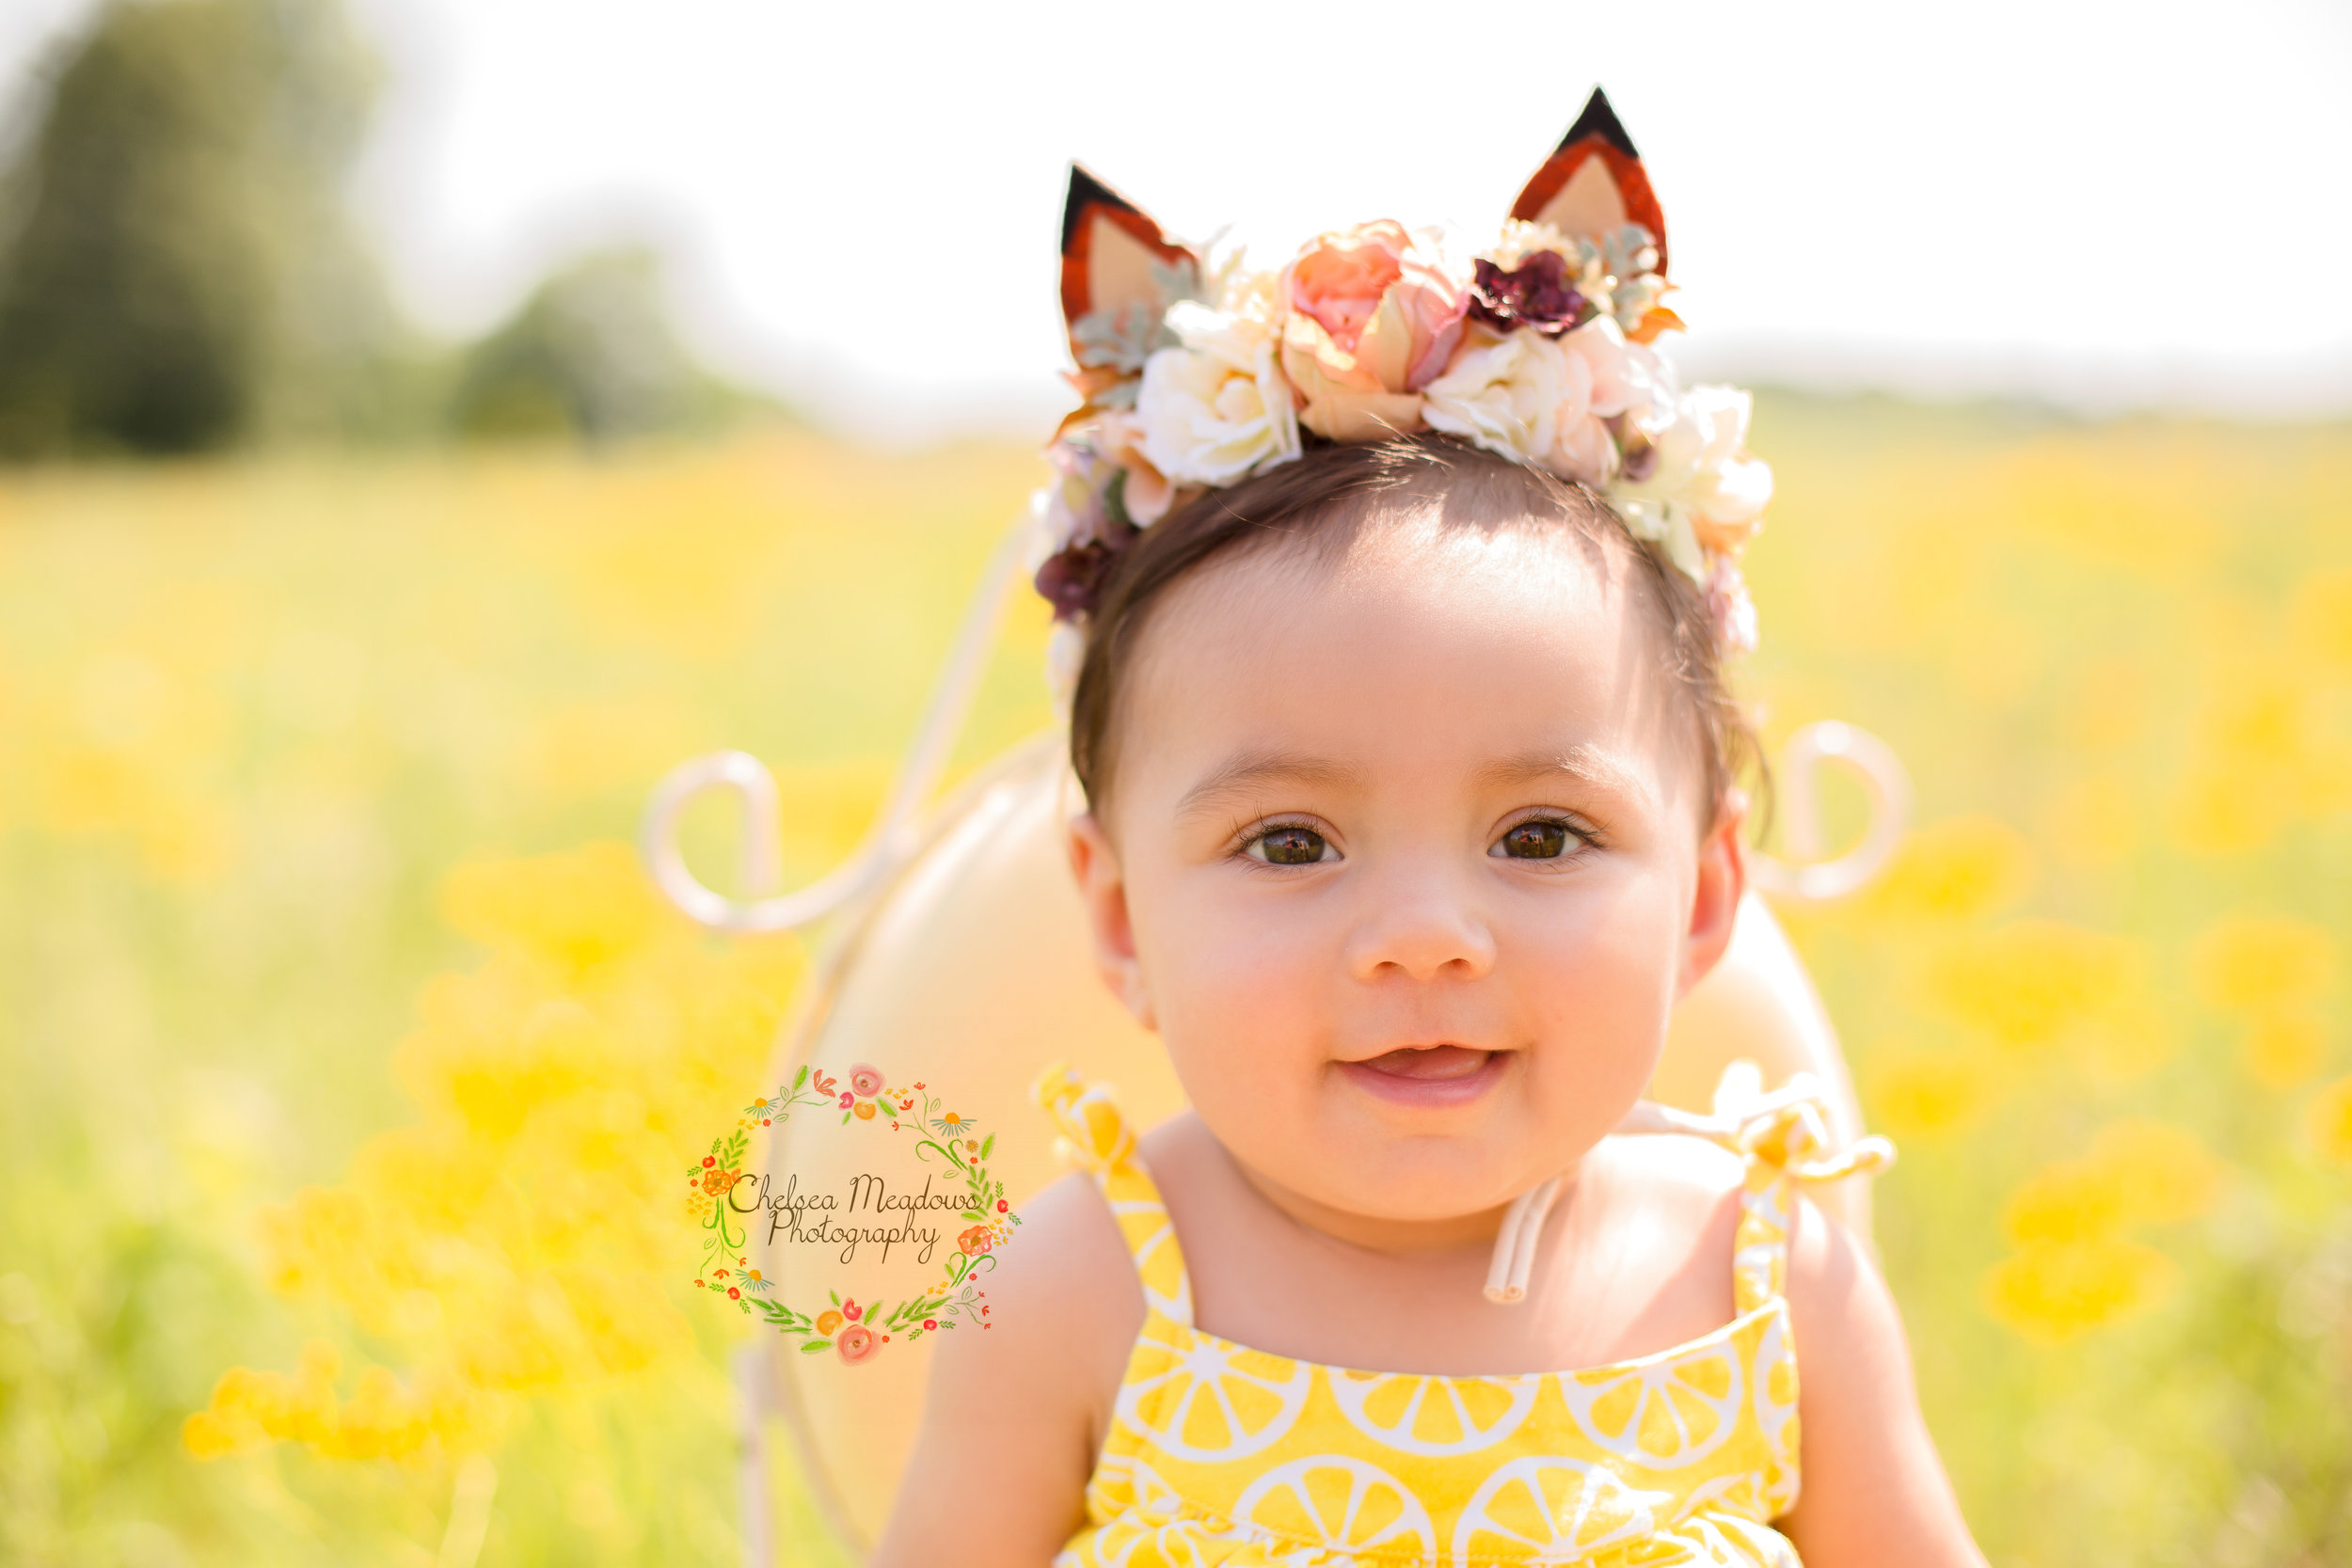 Camryn 6 Month Session - Nashville Family Photographer - Chelsea Meadows Photography (3)_edited-1.jpg